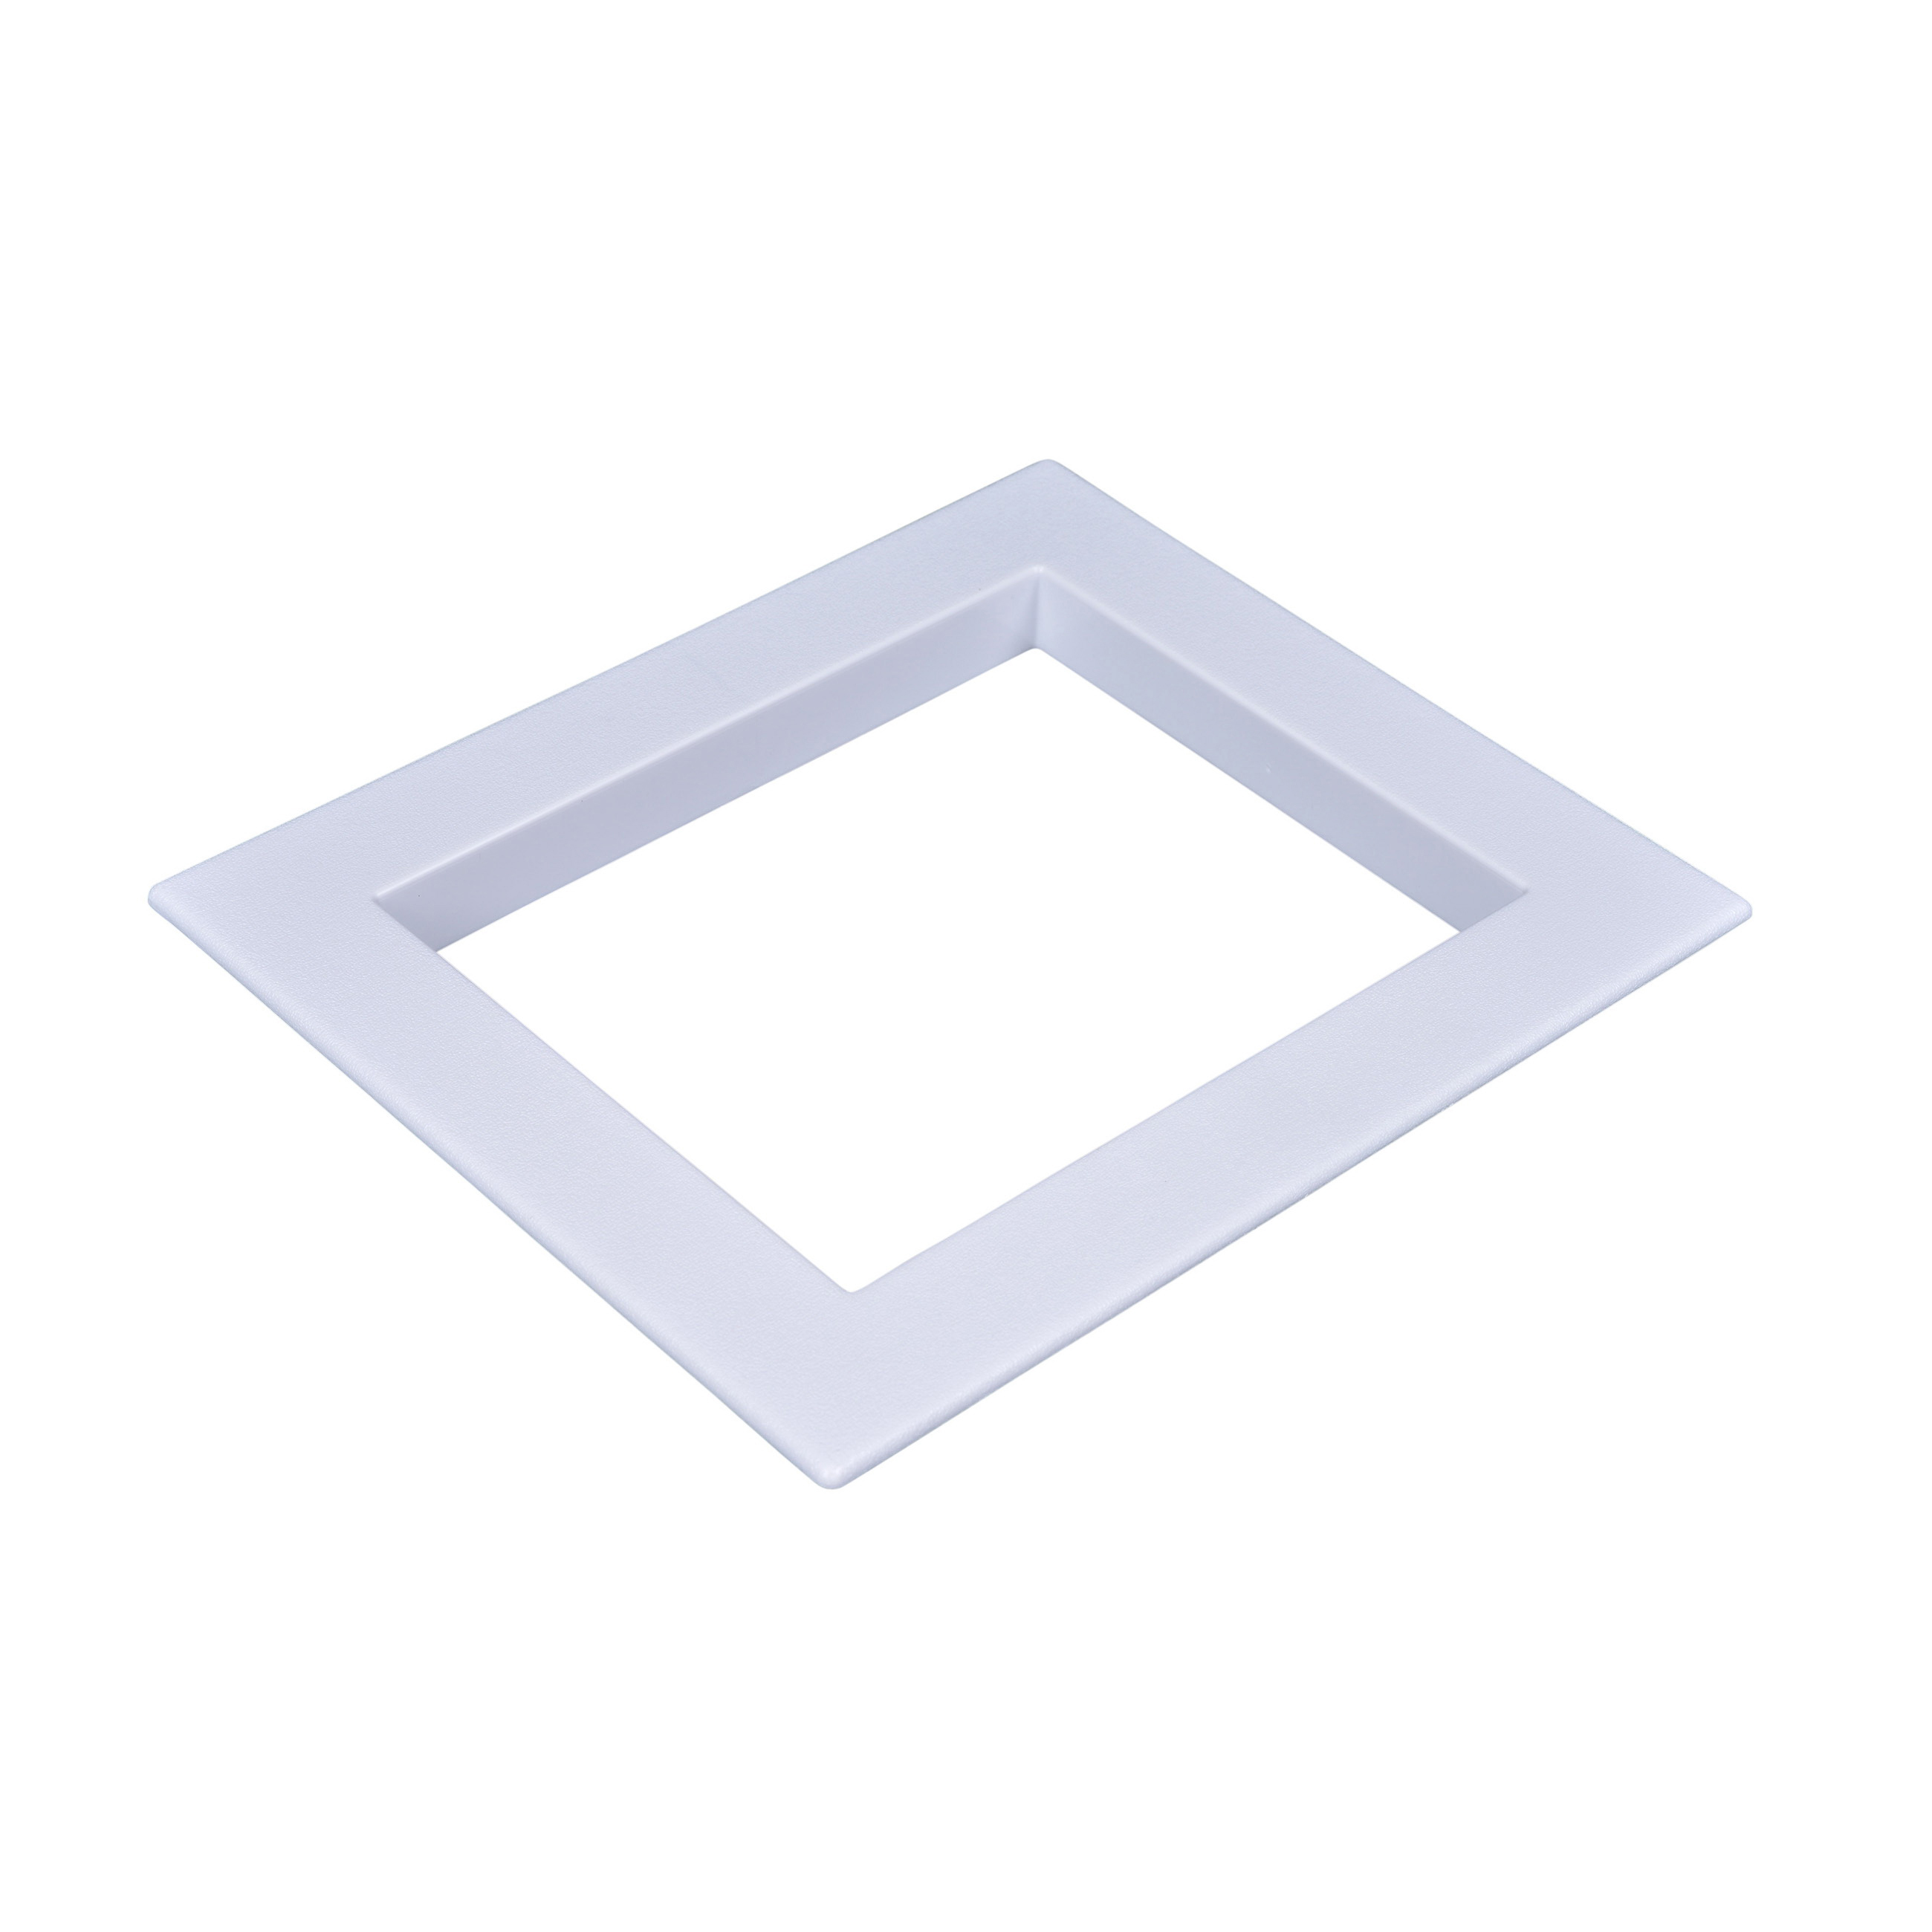 Oatey Quadtro 38941 Faceplate, For Use With Quadtro Center and Offset Washing Machine Outlet Box, Plastic